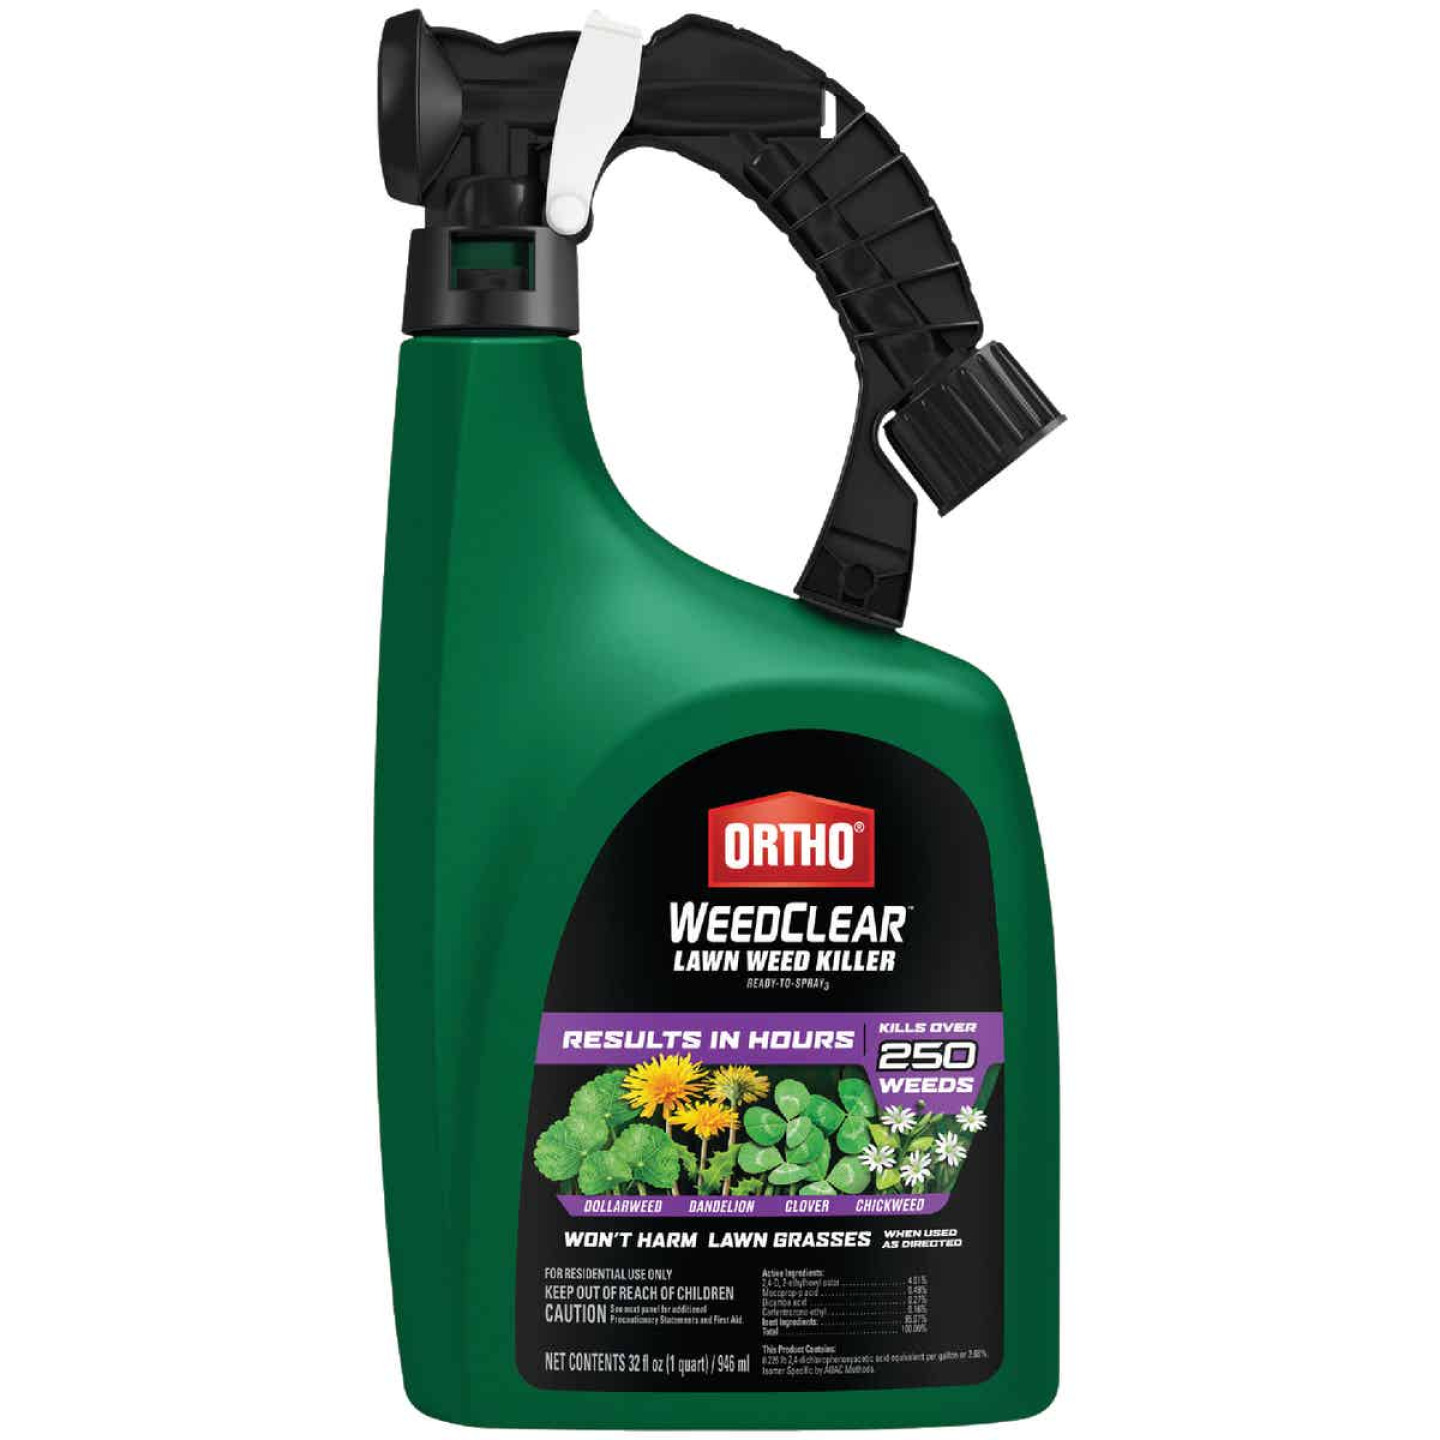 Ortho WeedClear 32 Oz. Ready To Spray Hose End Southern Lawn Weed Killer Image 1